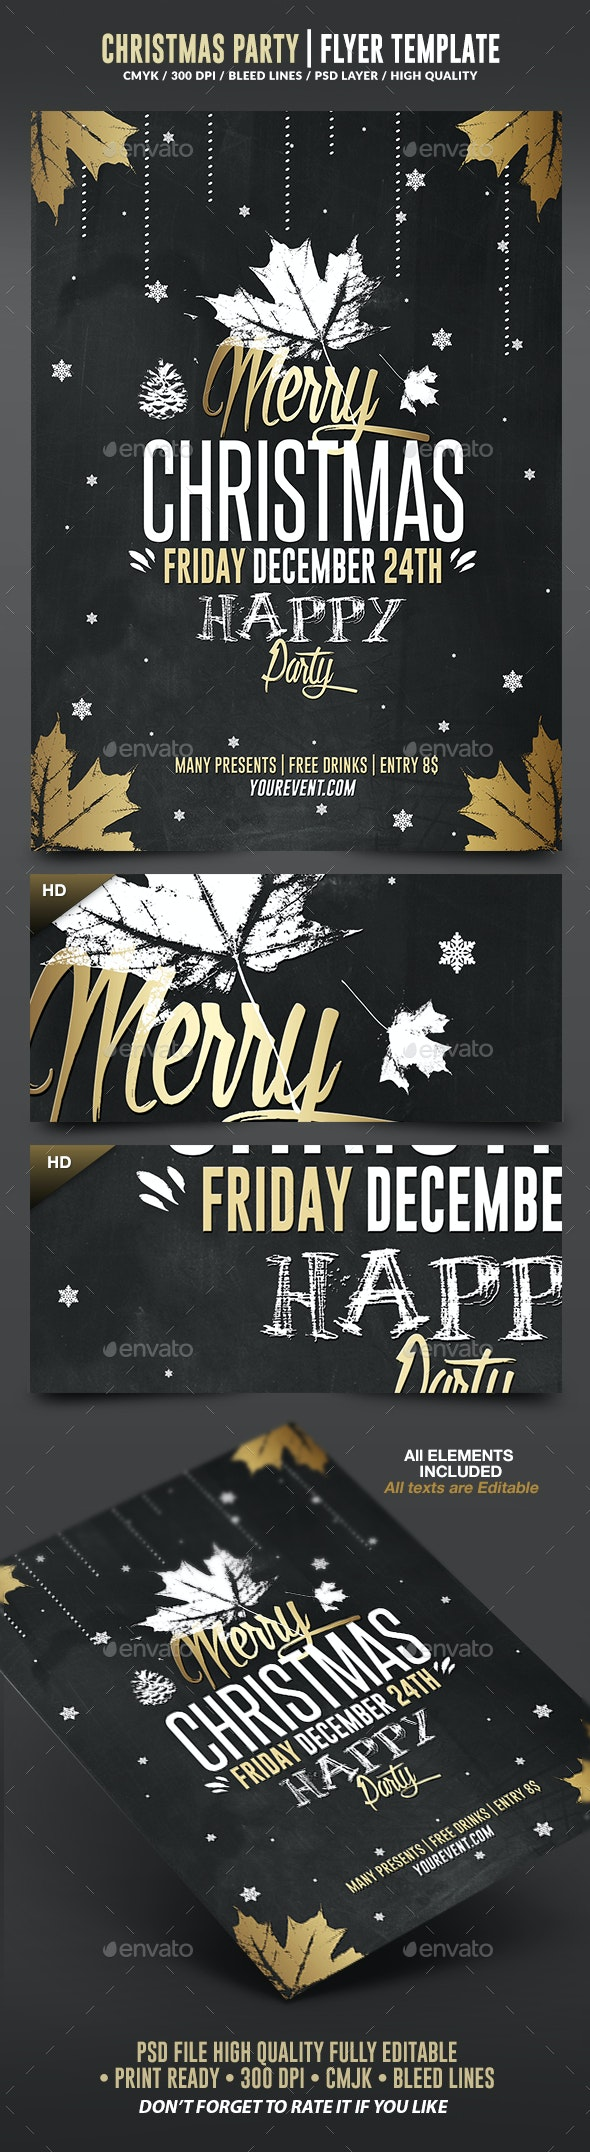 Christmas 2016 | Psd Flyer Template - Holidays Events